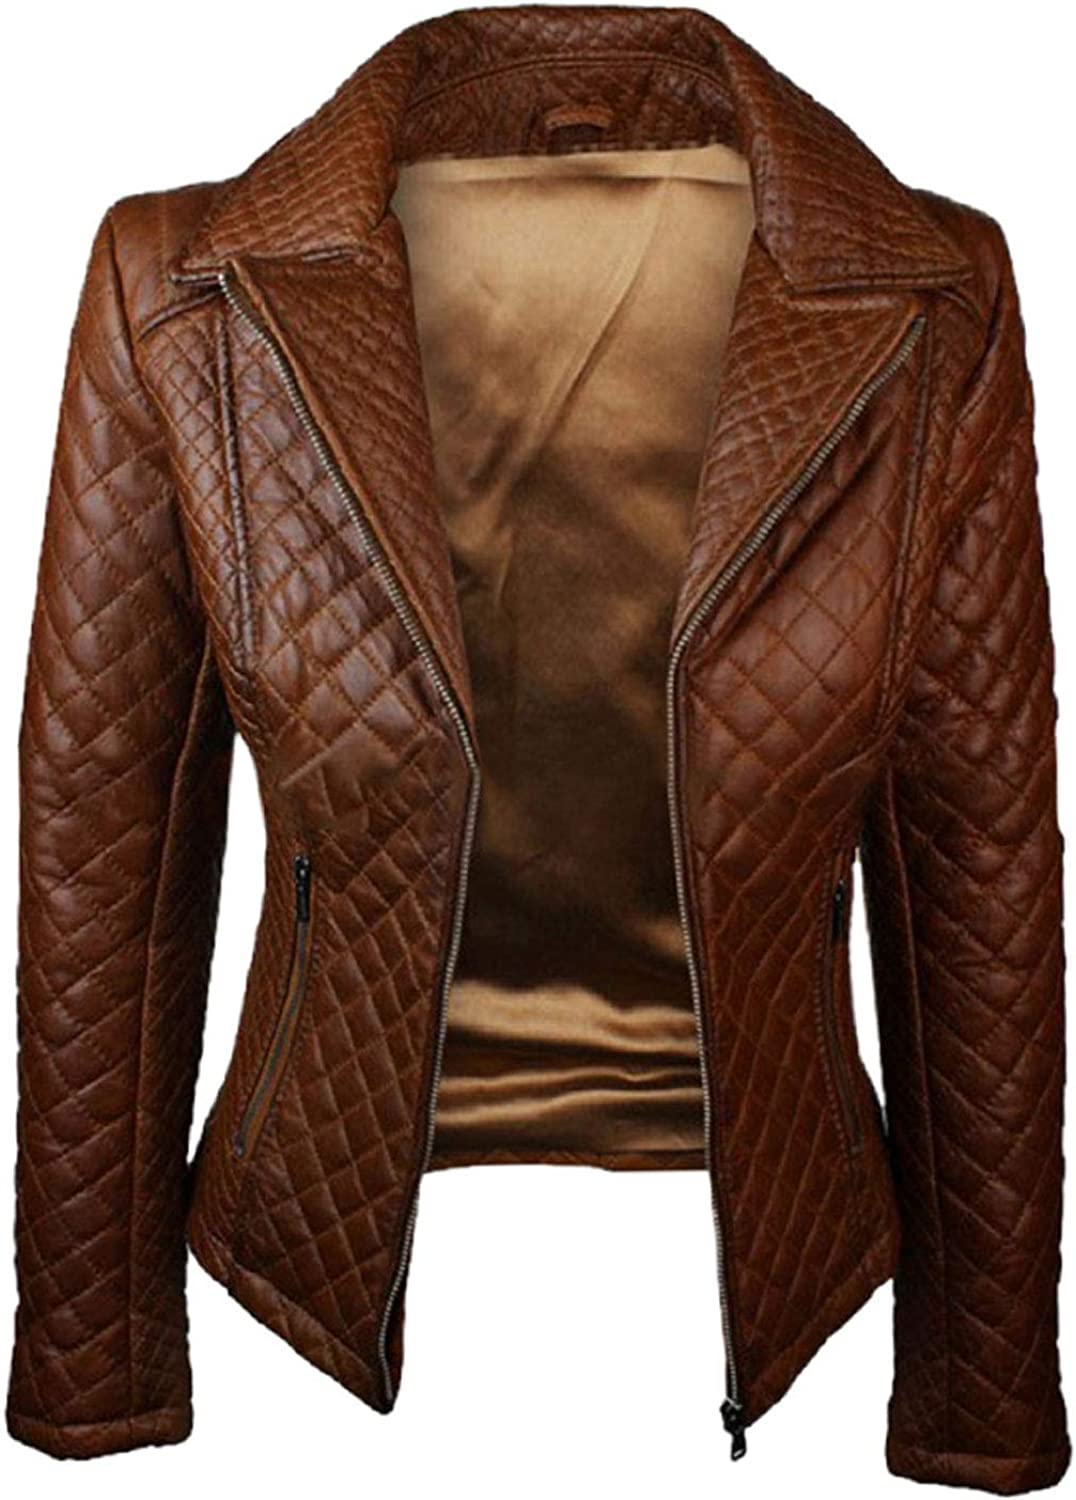 UGFashions Womens Vintage Brando Motorcycle Quilted Brown Biker Slim Fit Synthetic Leather Jacket